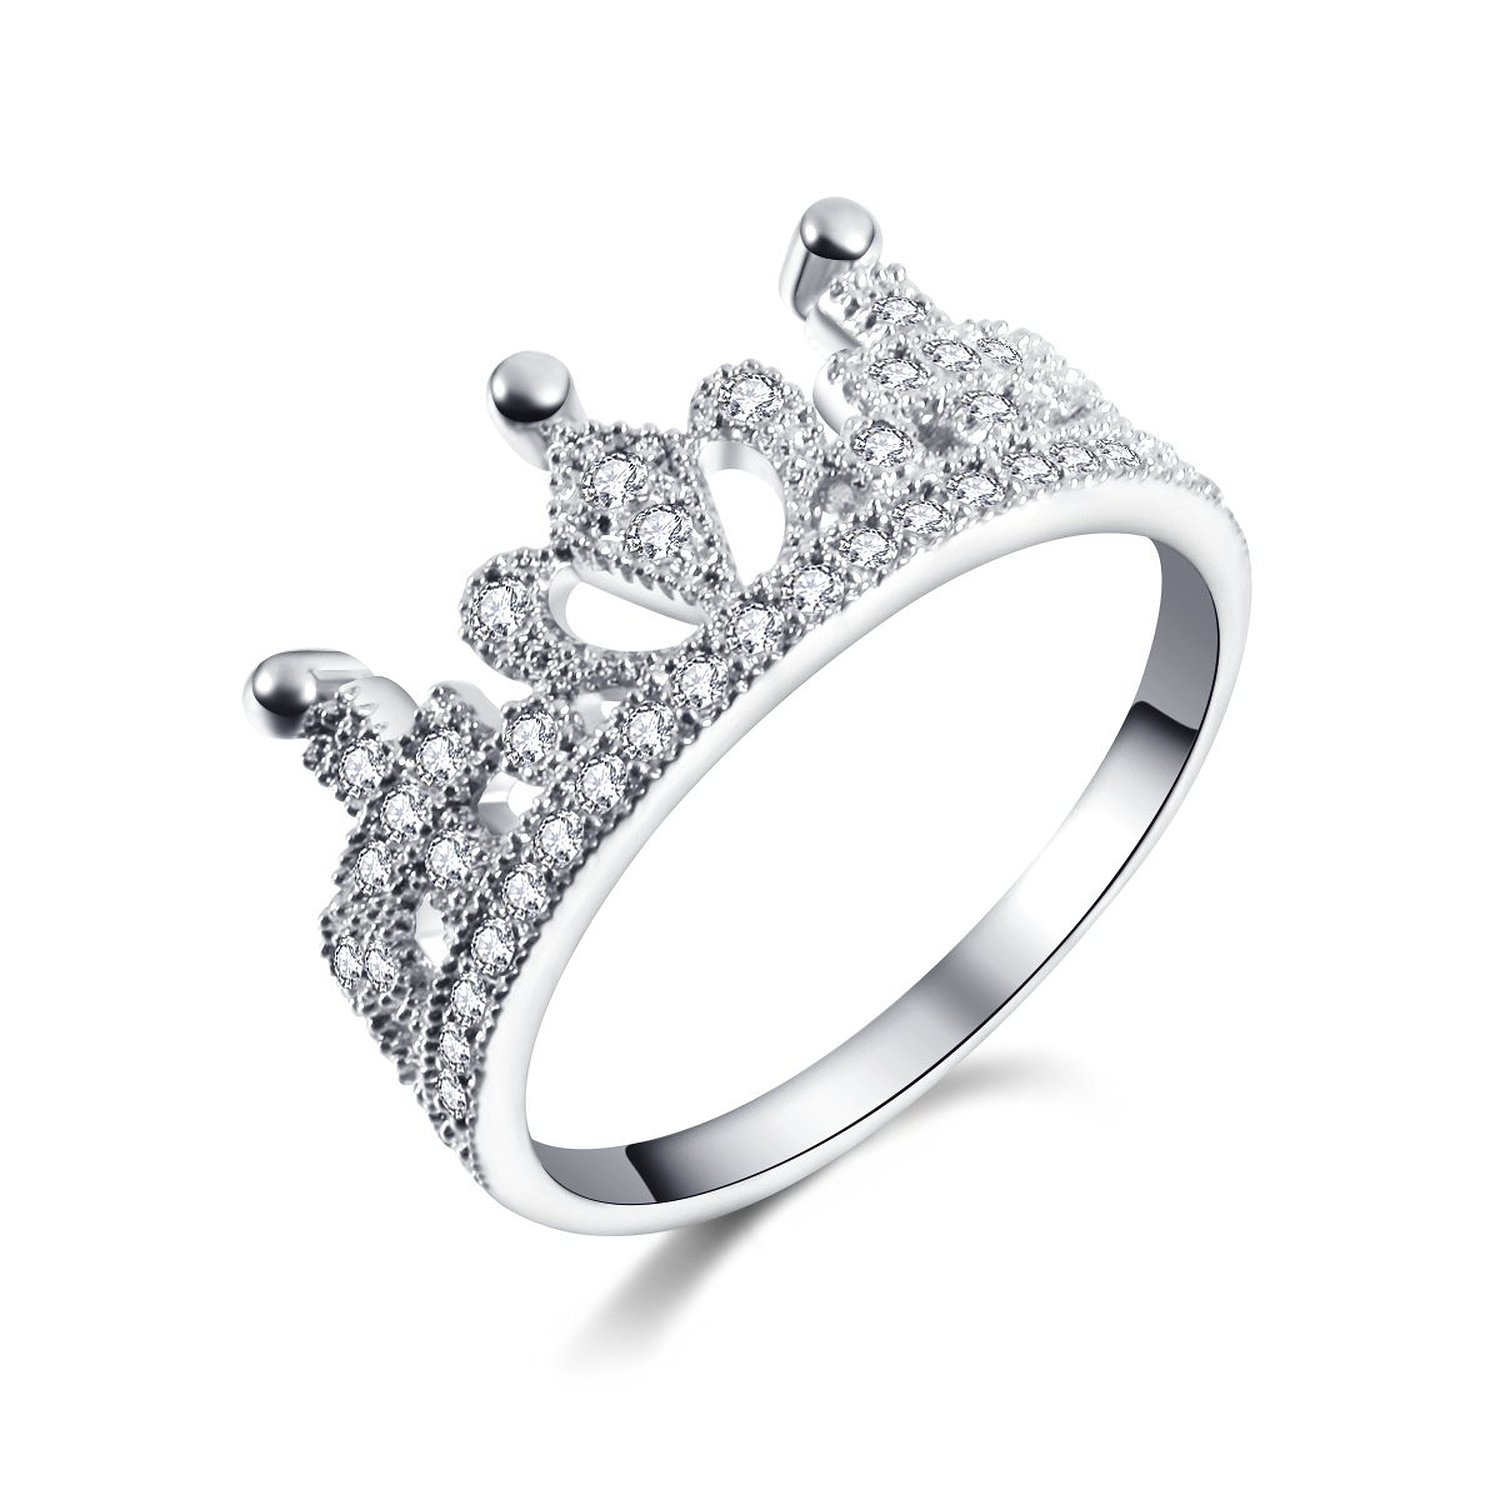 Amazon.com: mp rhodium plated lovely crown shape white cz silver ring 061788j j0701 size us 6: clothing